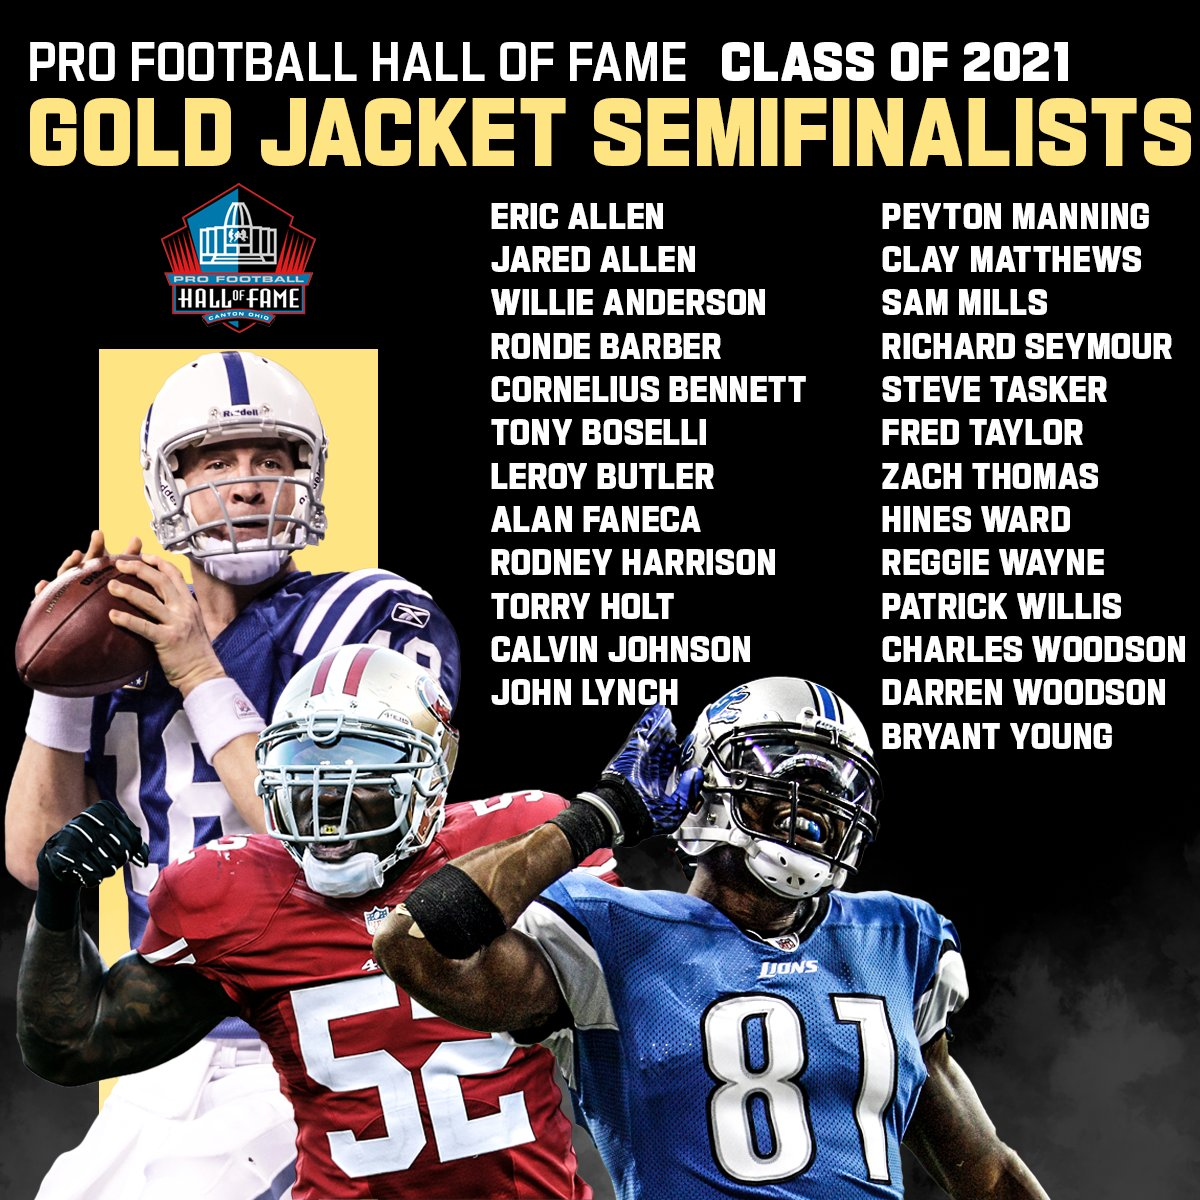 Replying to @nflnetwork: The 2021 @profootballhof Gold Jacket Semifinalists!